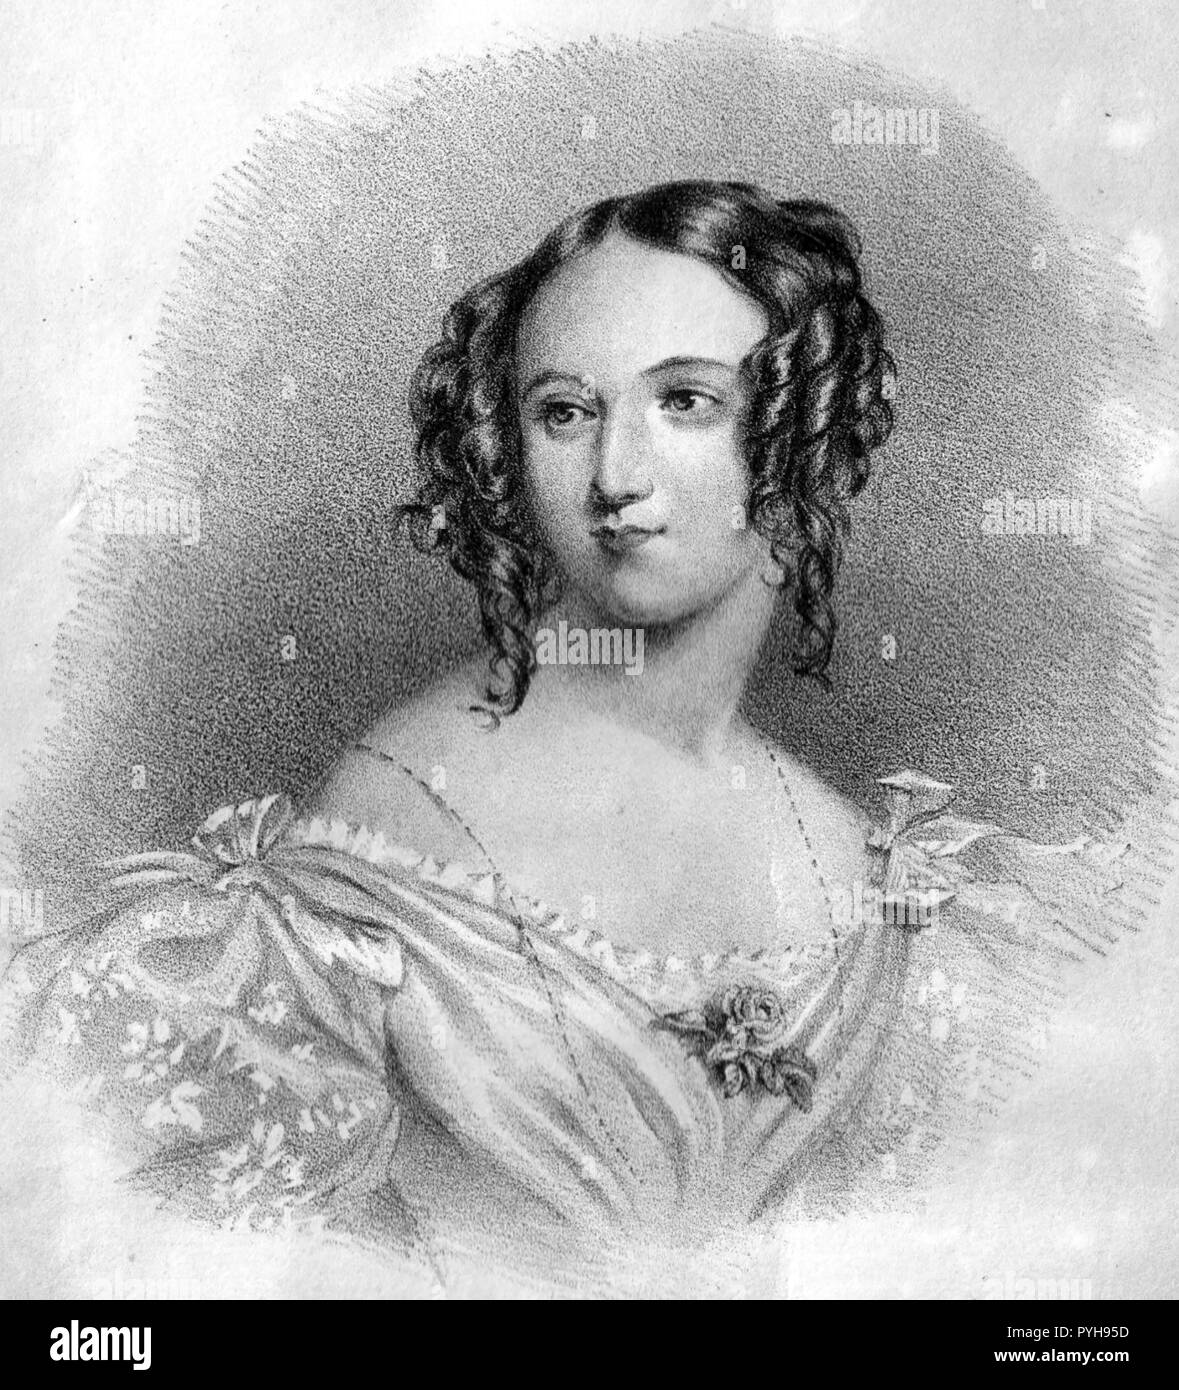 FLORA HASTINGS (1806-1839) English aristocrat - Stock Image